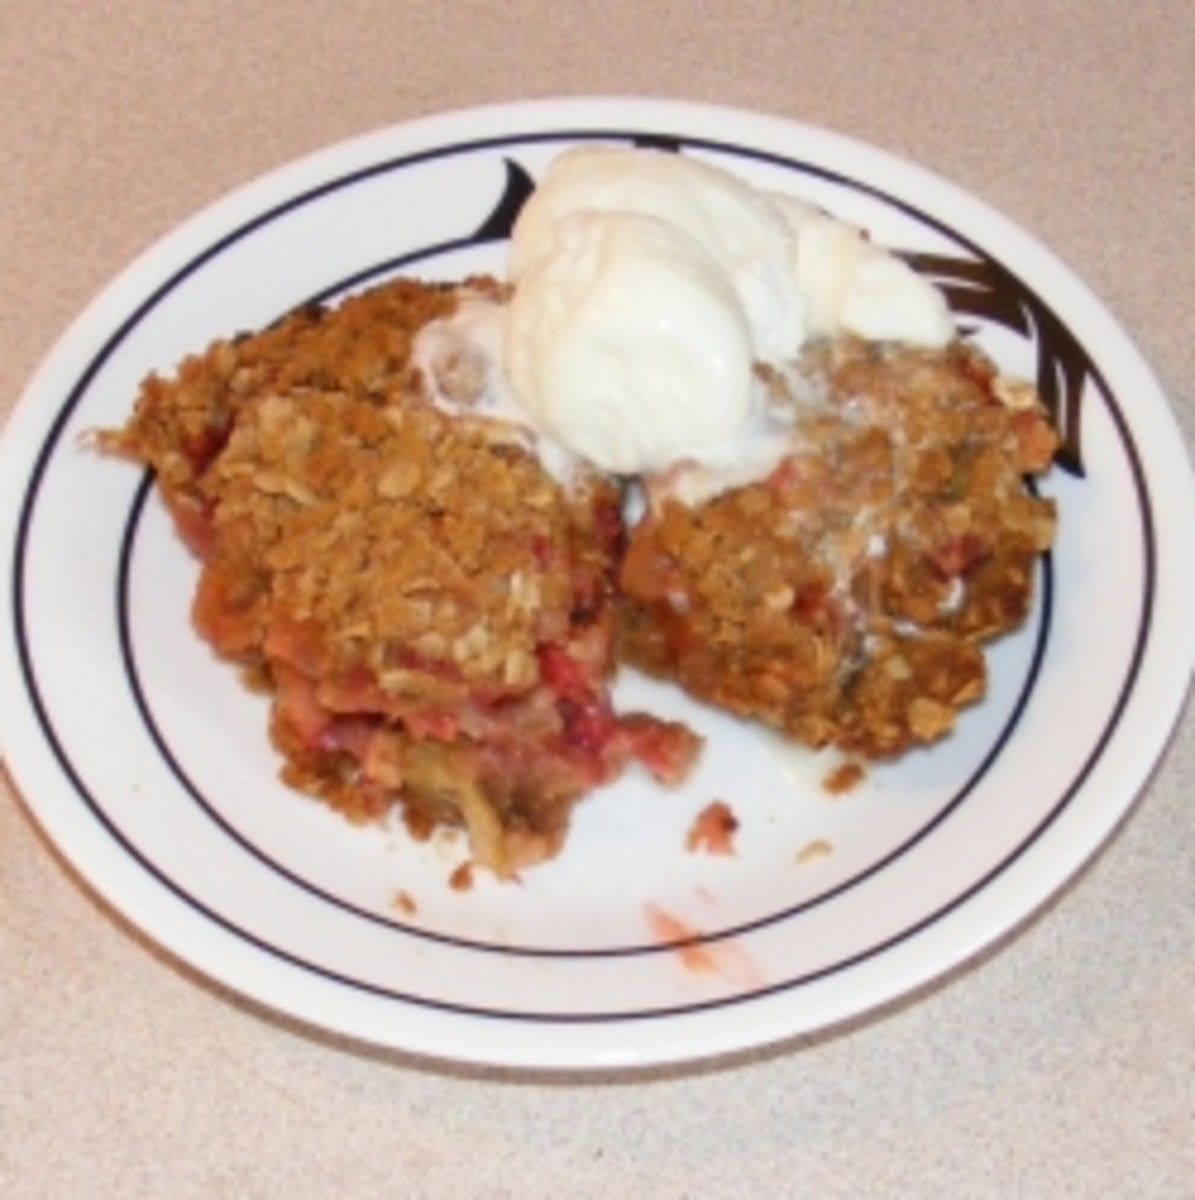 Homemade apple Rhubarb crisp.